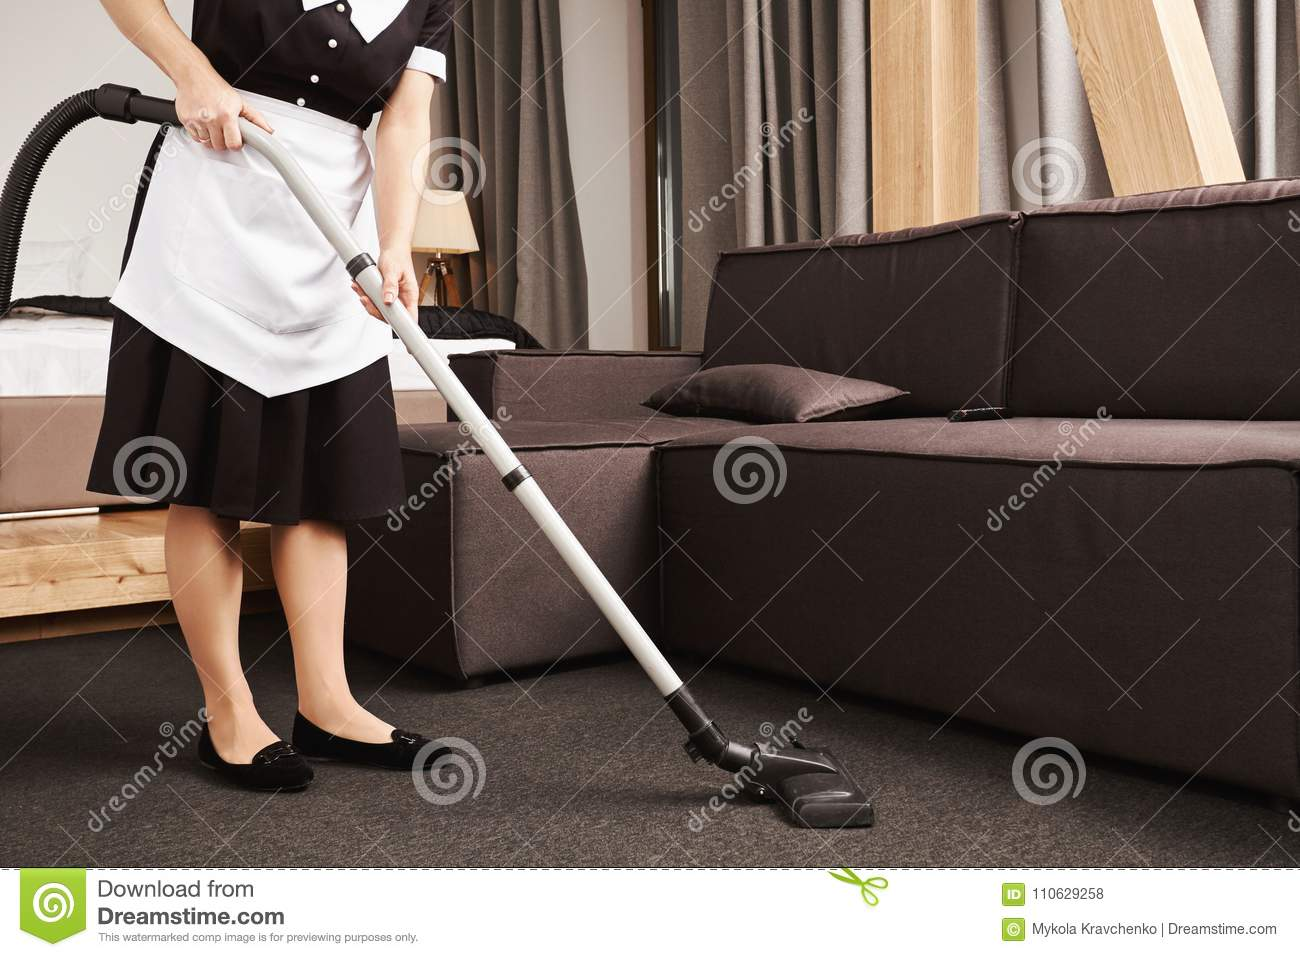 Clean house is key for productivity. Cropped shot of housemaid during work, cleaning living room with vacuum cleaner